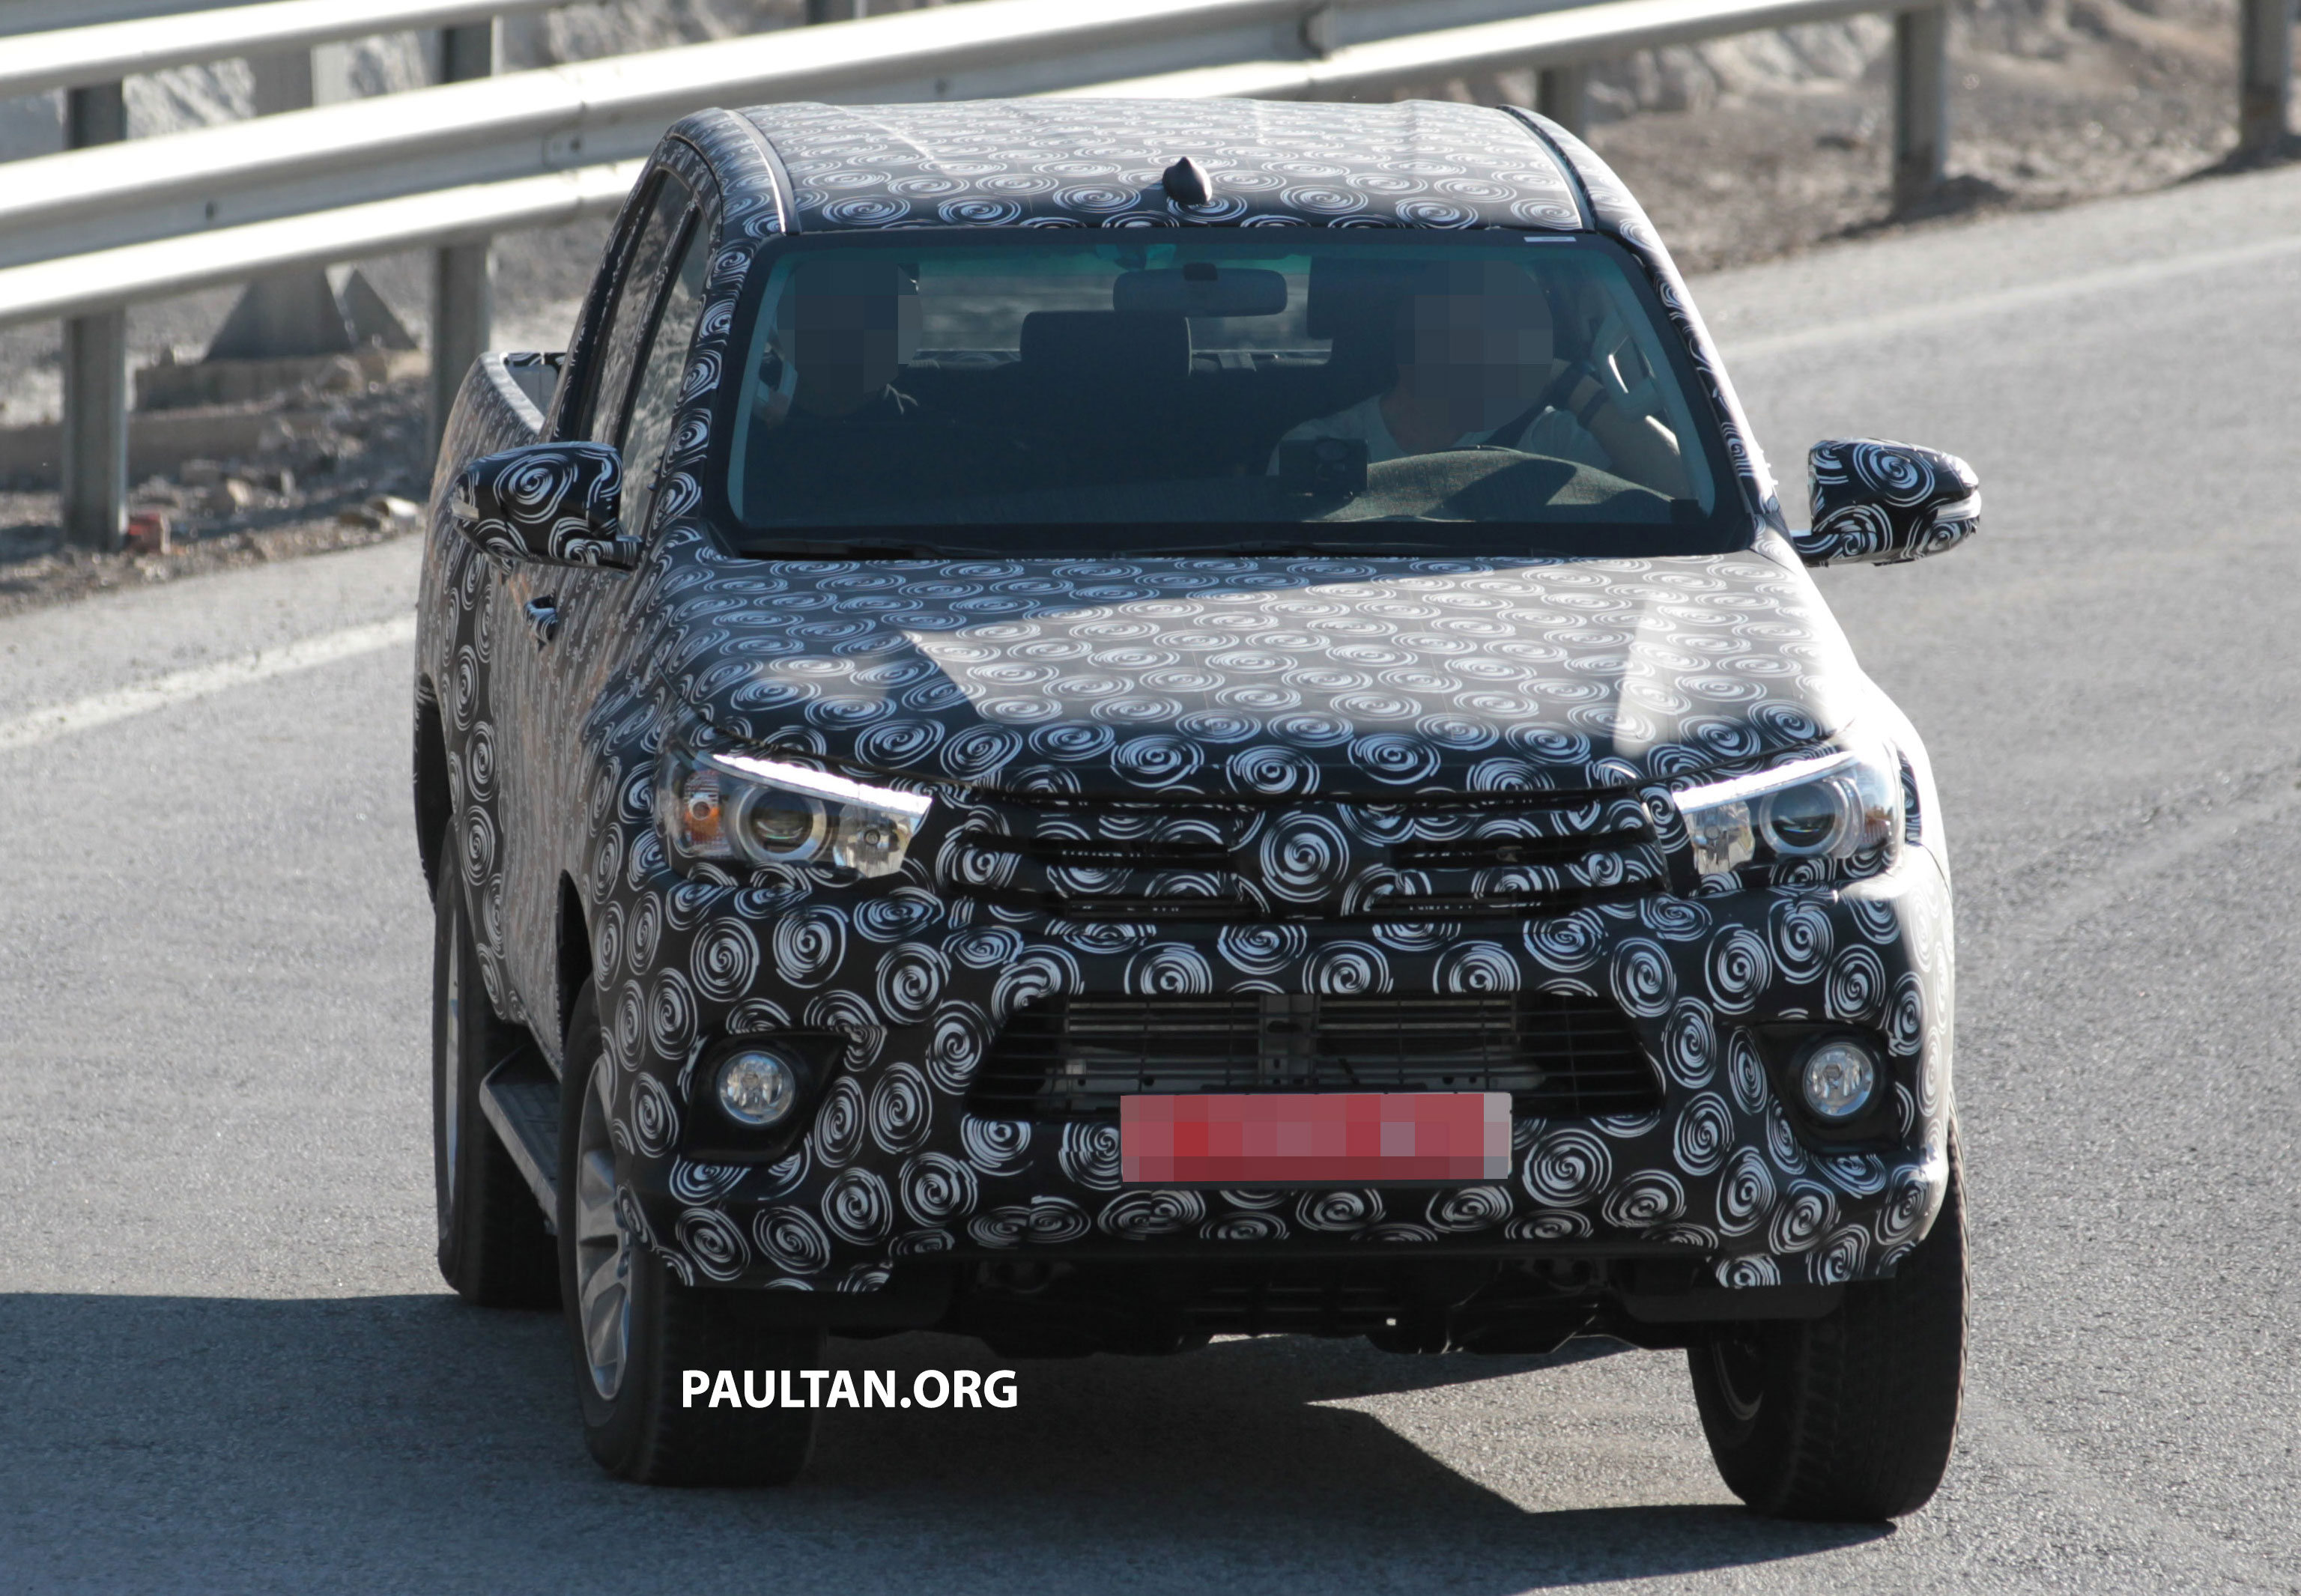 2015 Toyota Hilux spotted testing in Europe - clearer shots!